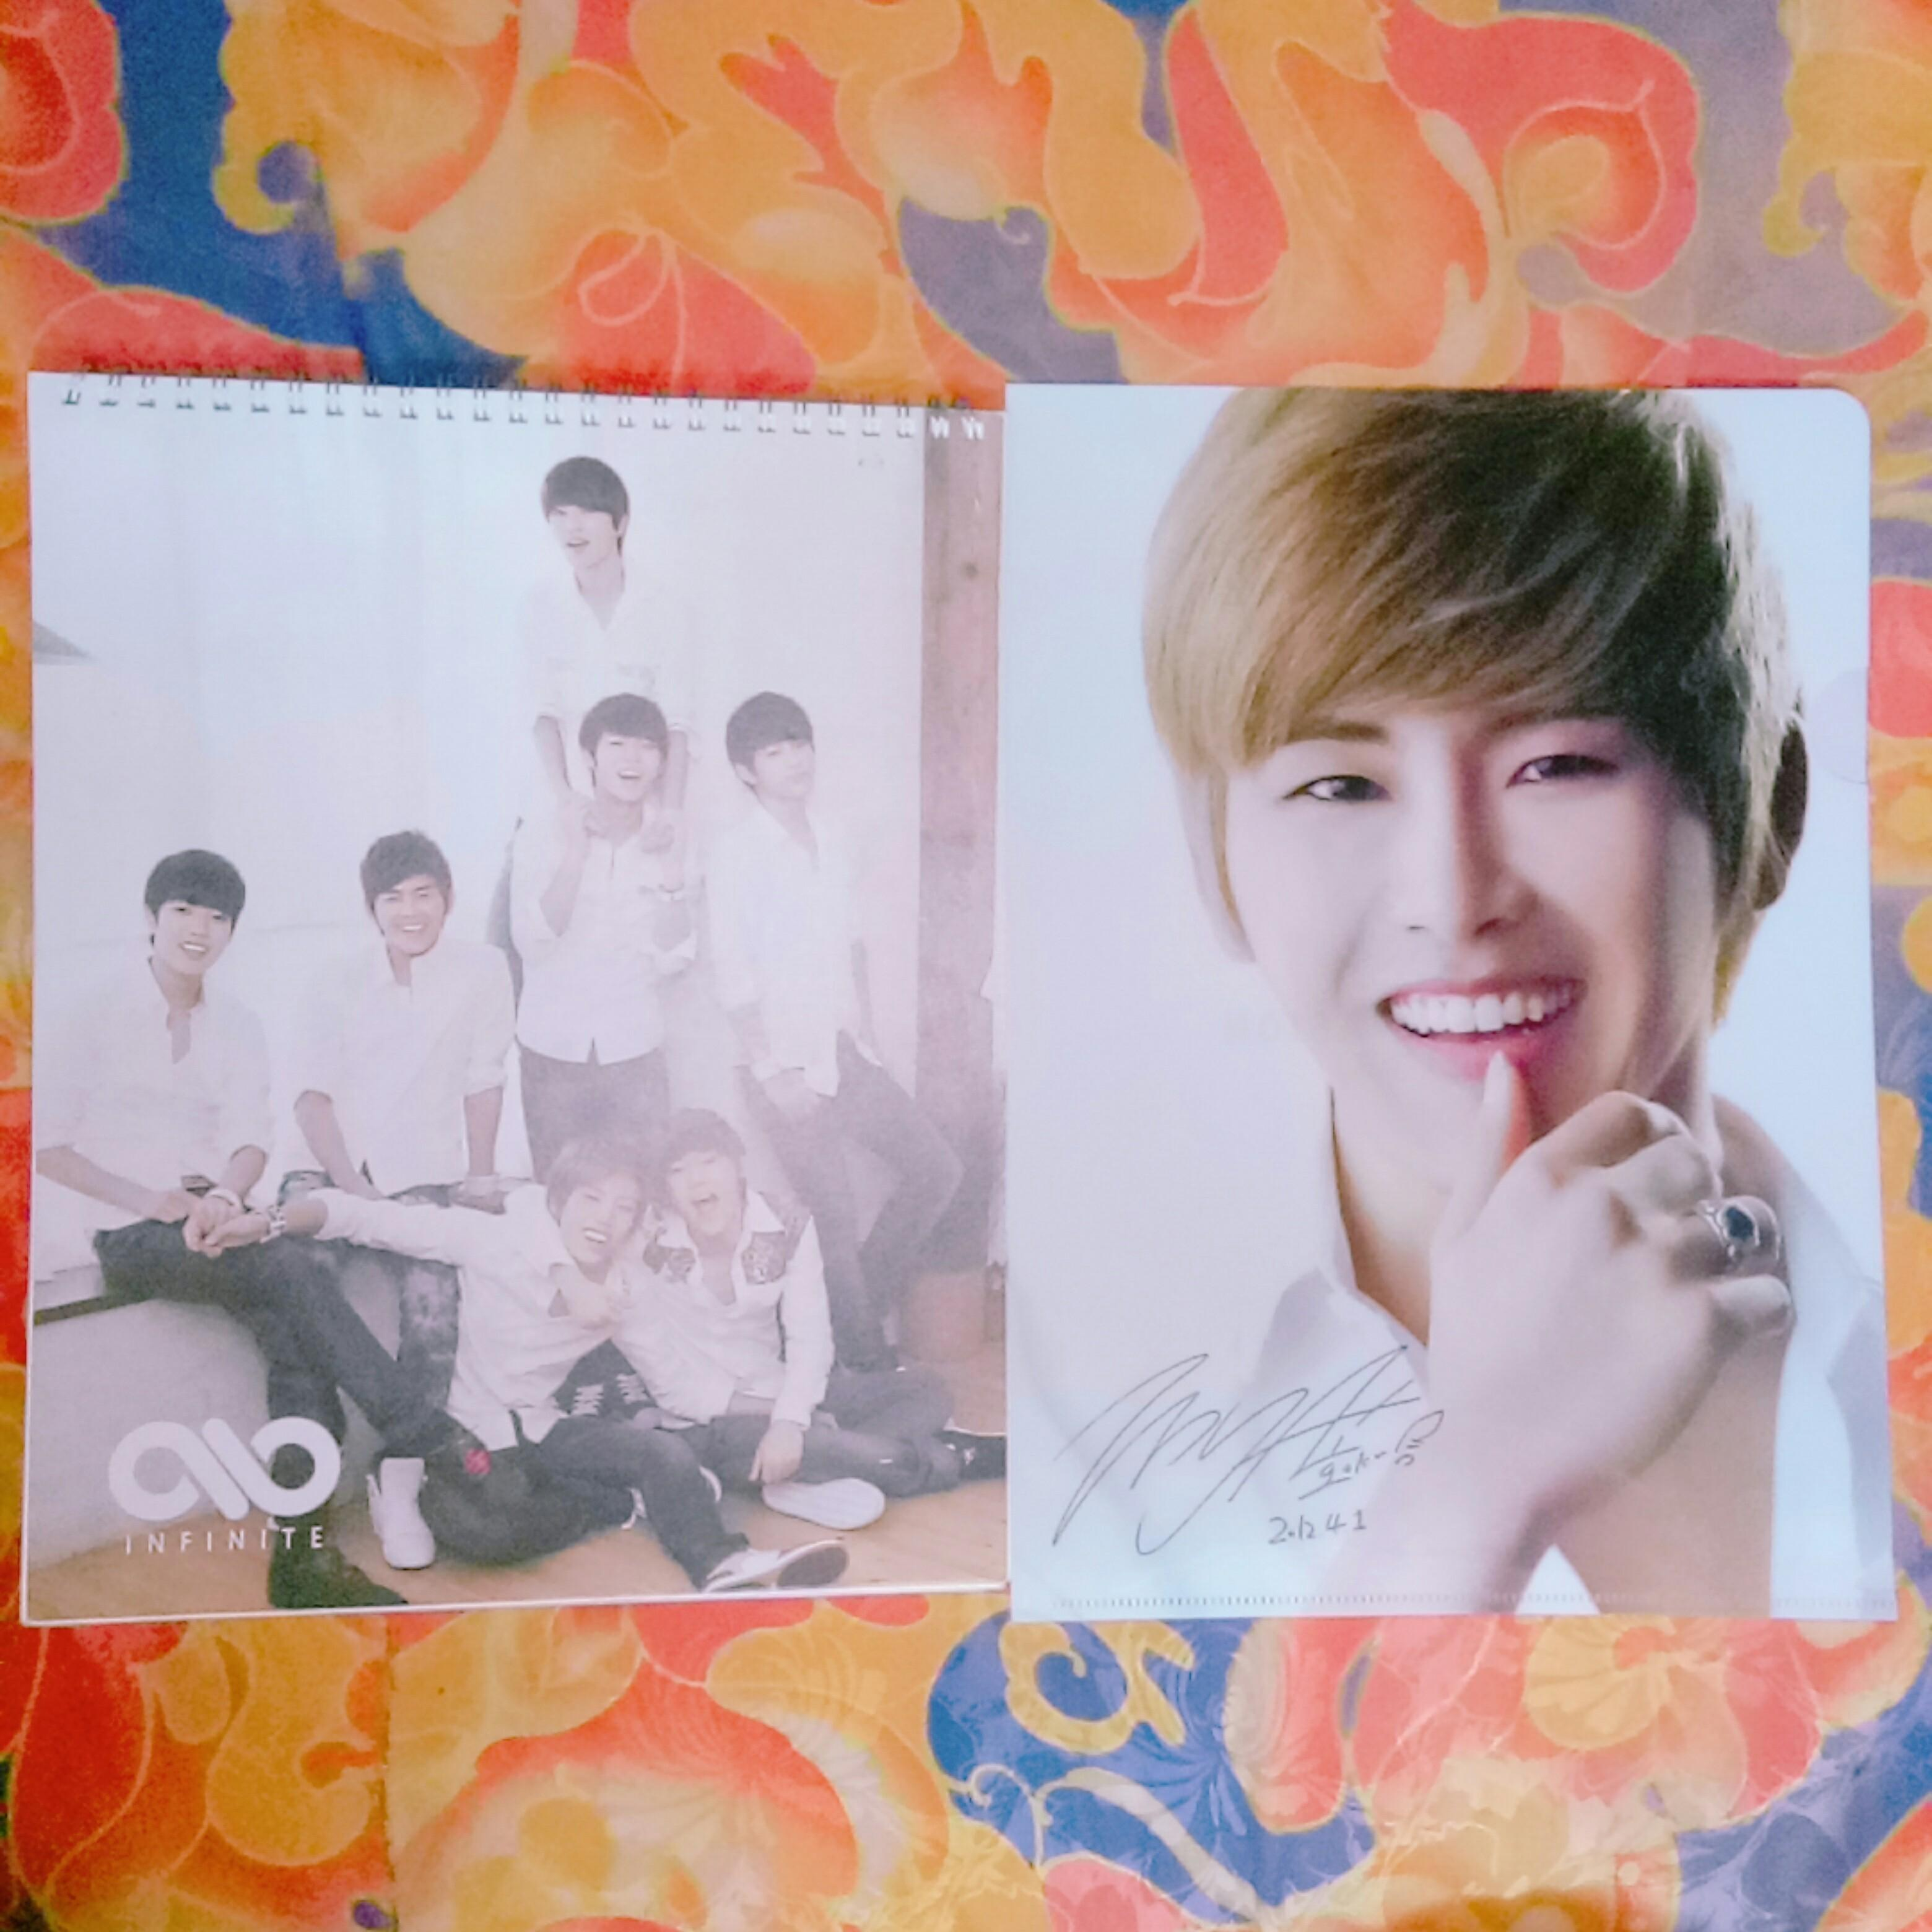 Infinite Season Greeting OFFICIAL 2012 Calendar, Hoya Second Invasion Evolution Official A4 clearfile autograph